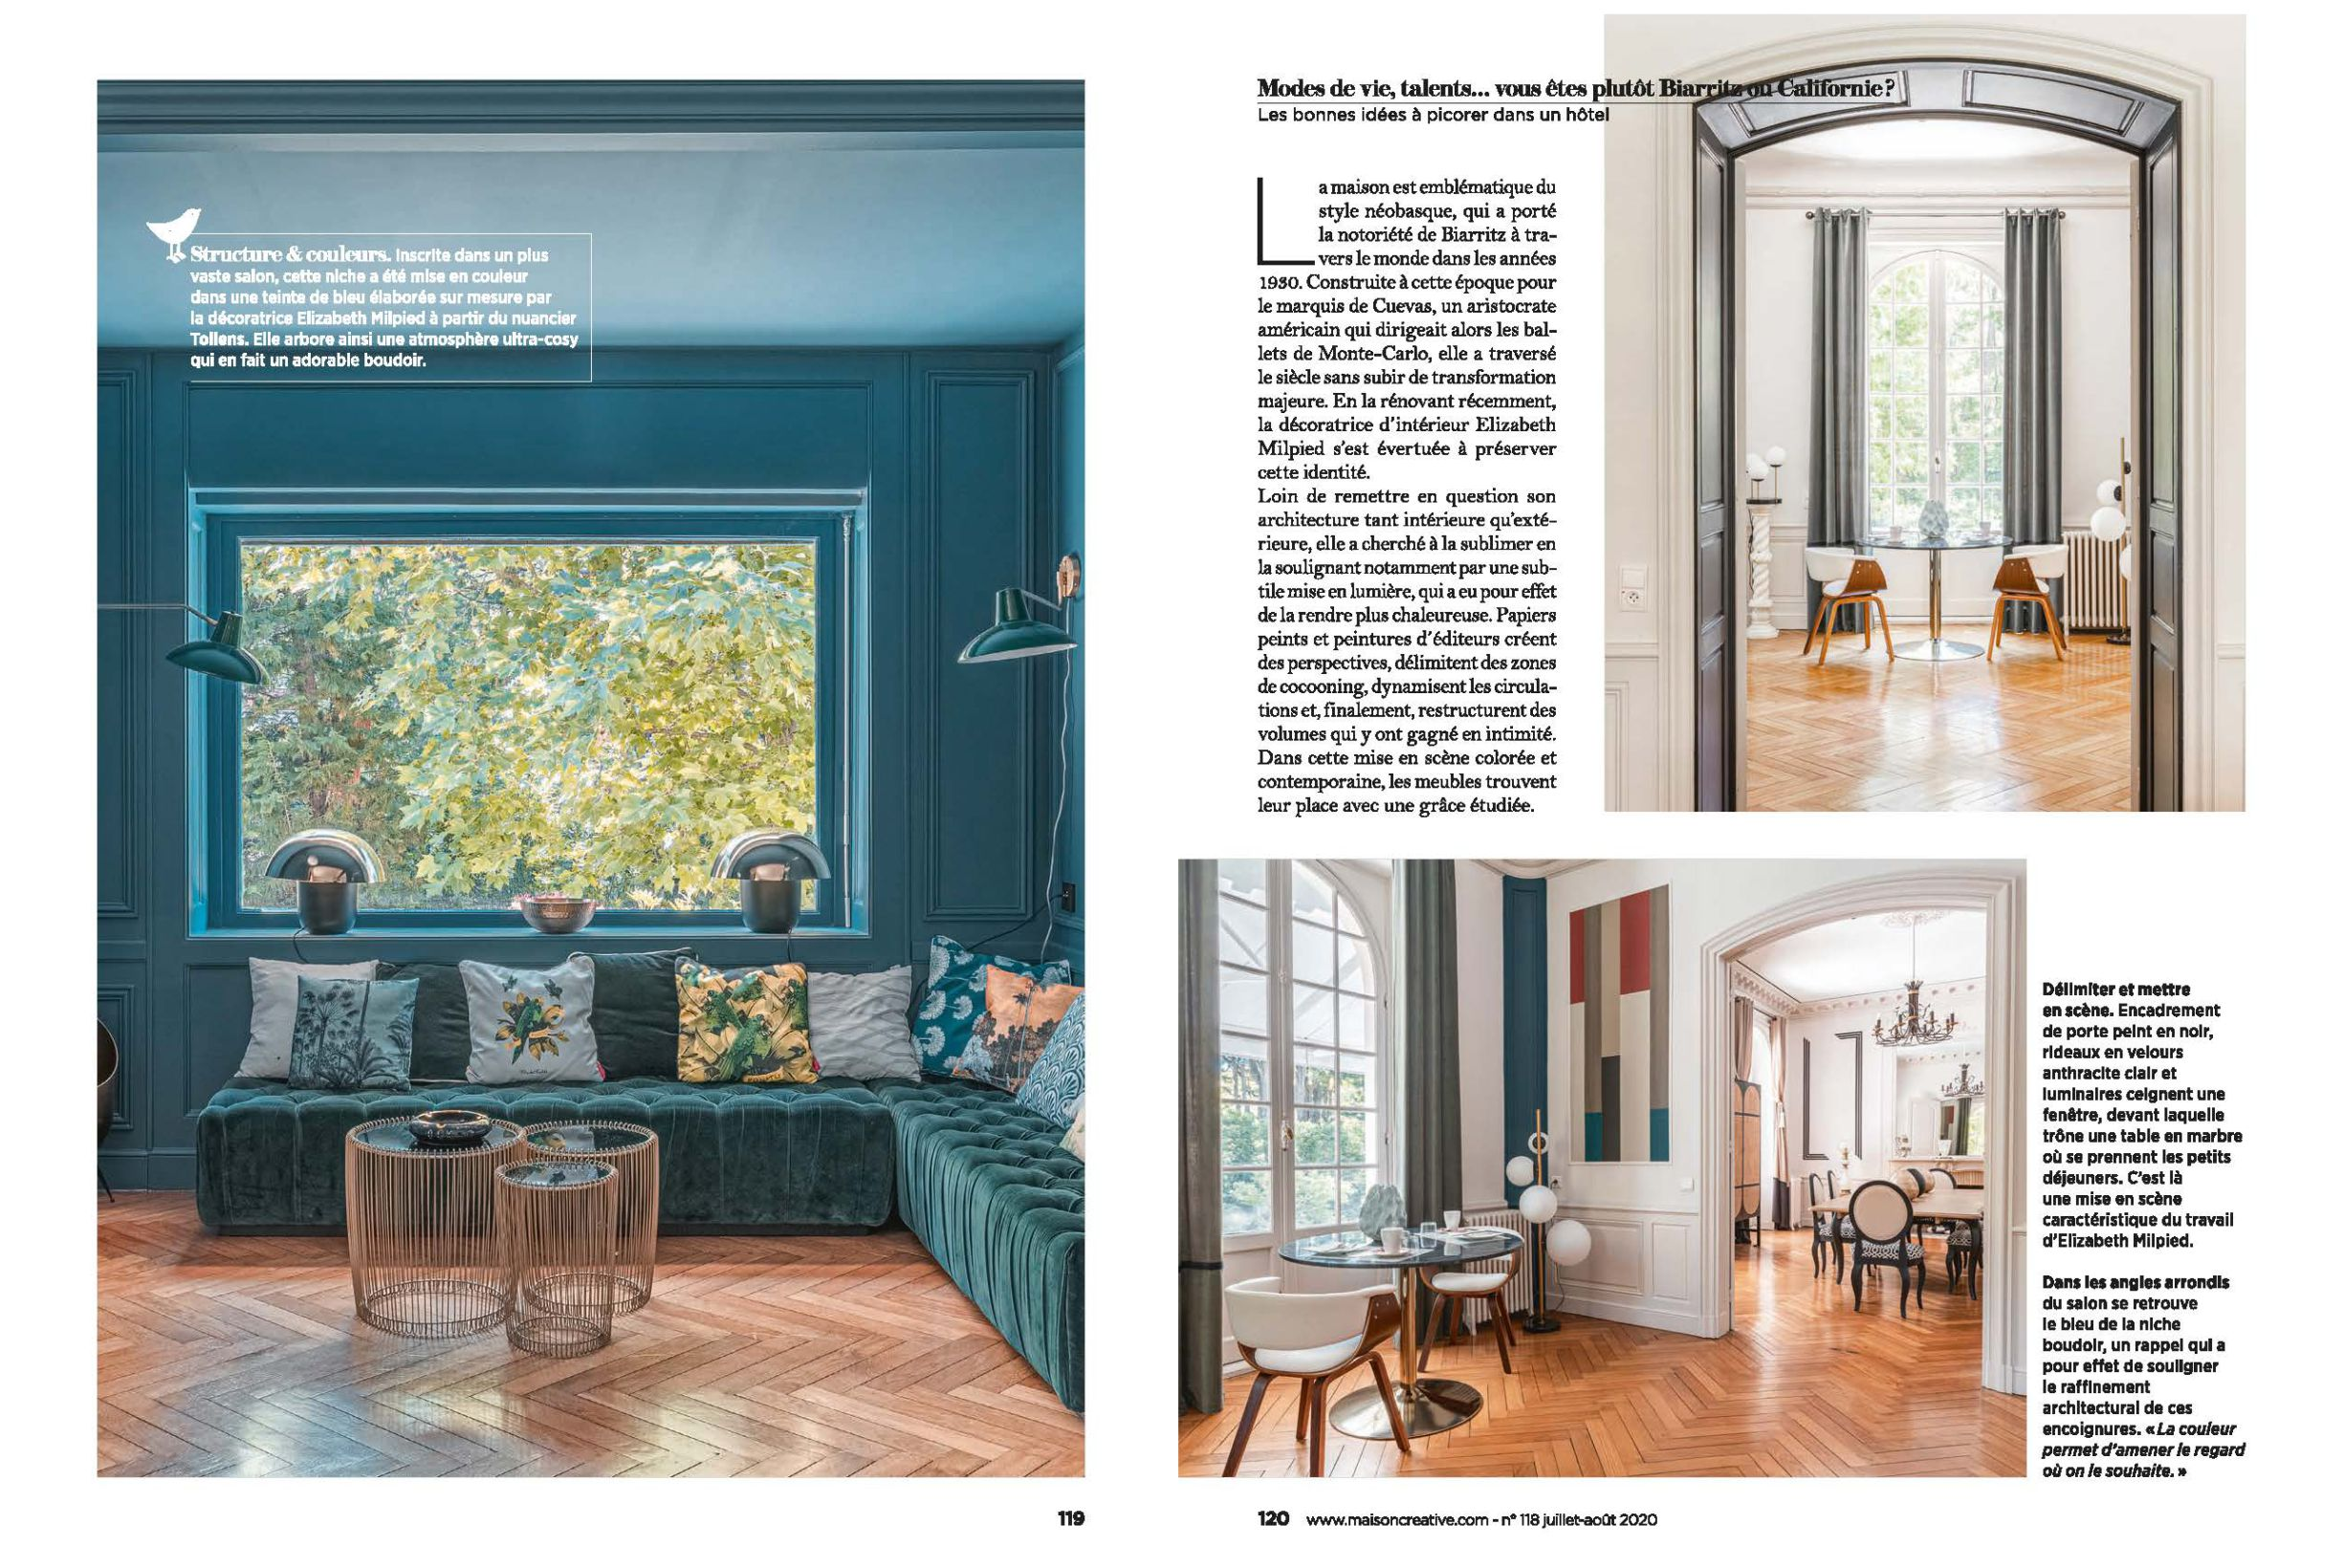 Maison creative article agence milpied